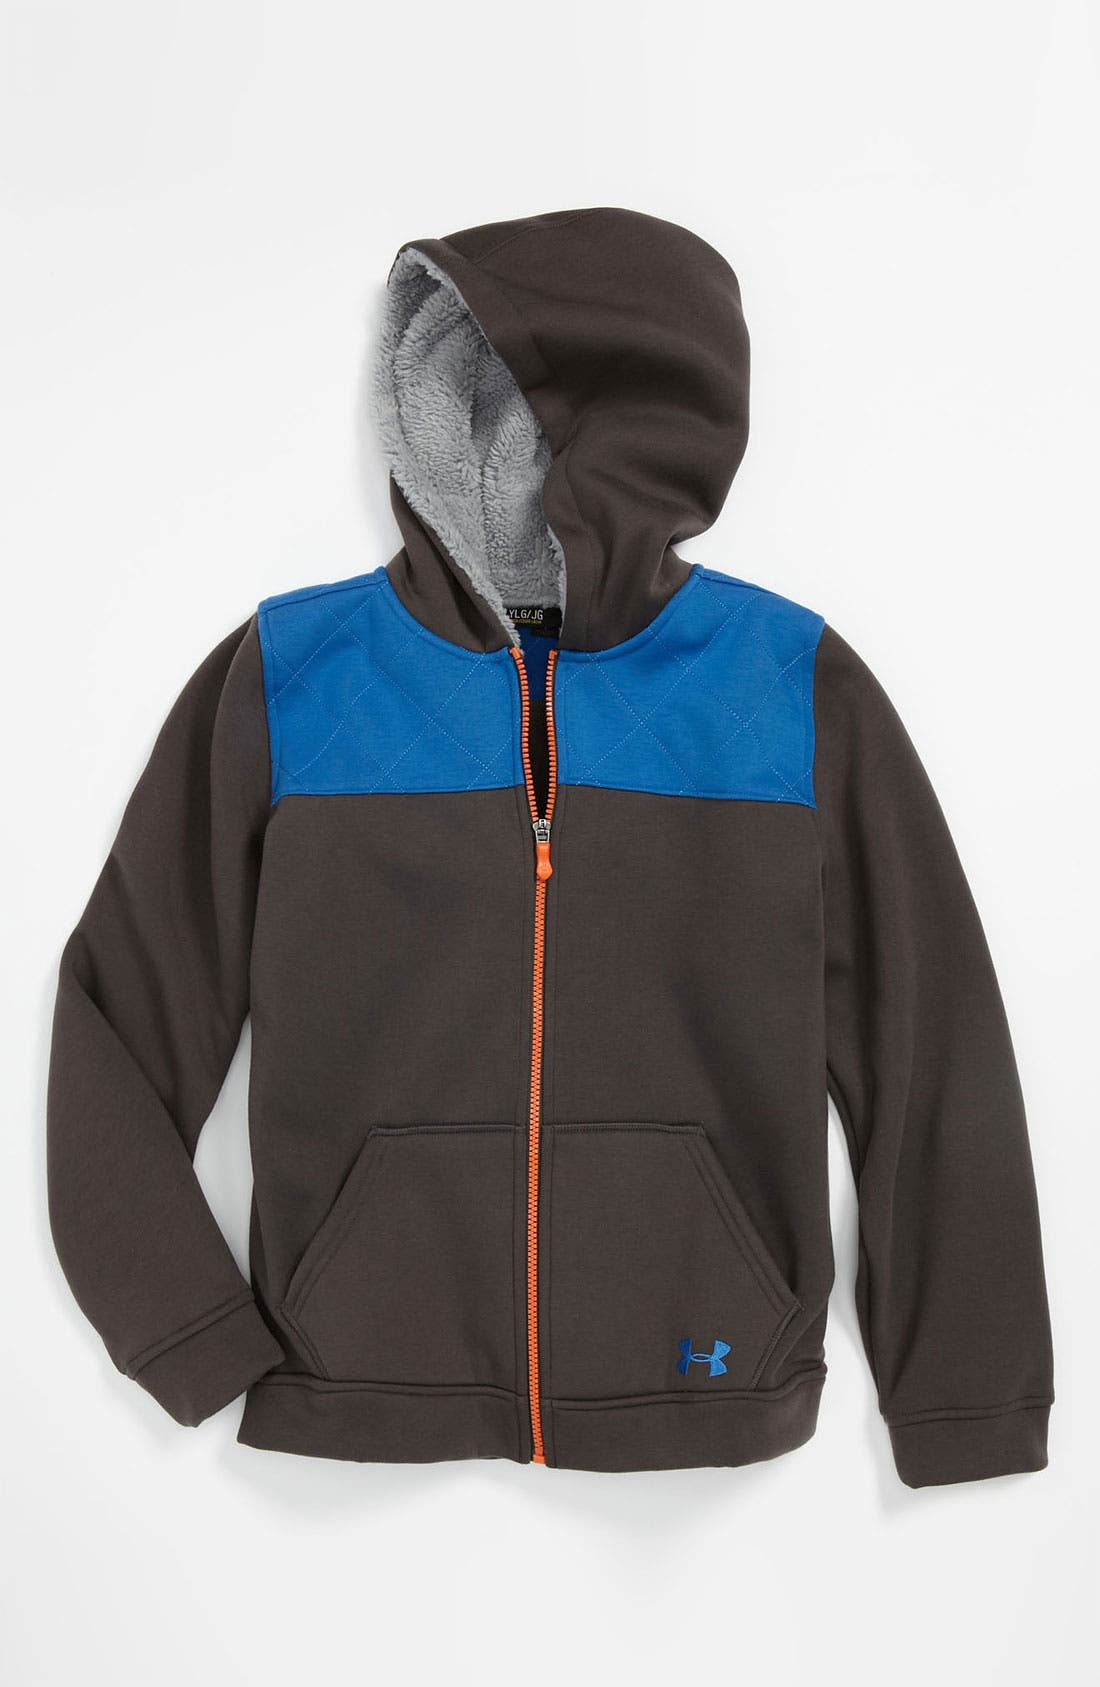 Main Image - Under Armour 'Super Warm FZ' Hoodie (Big Boys)